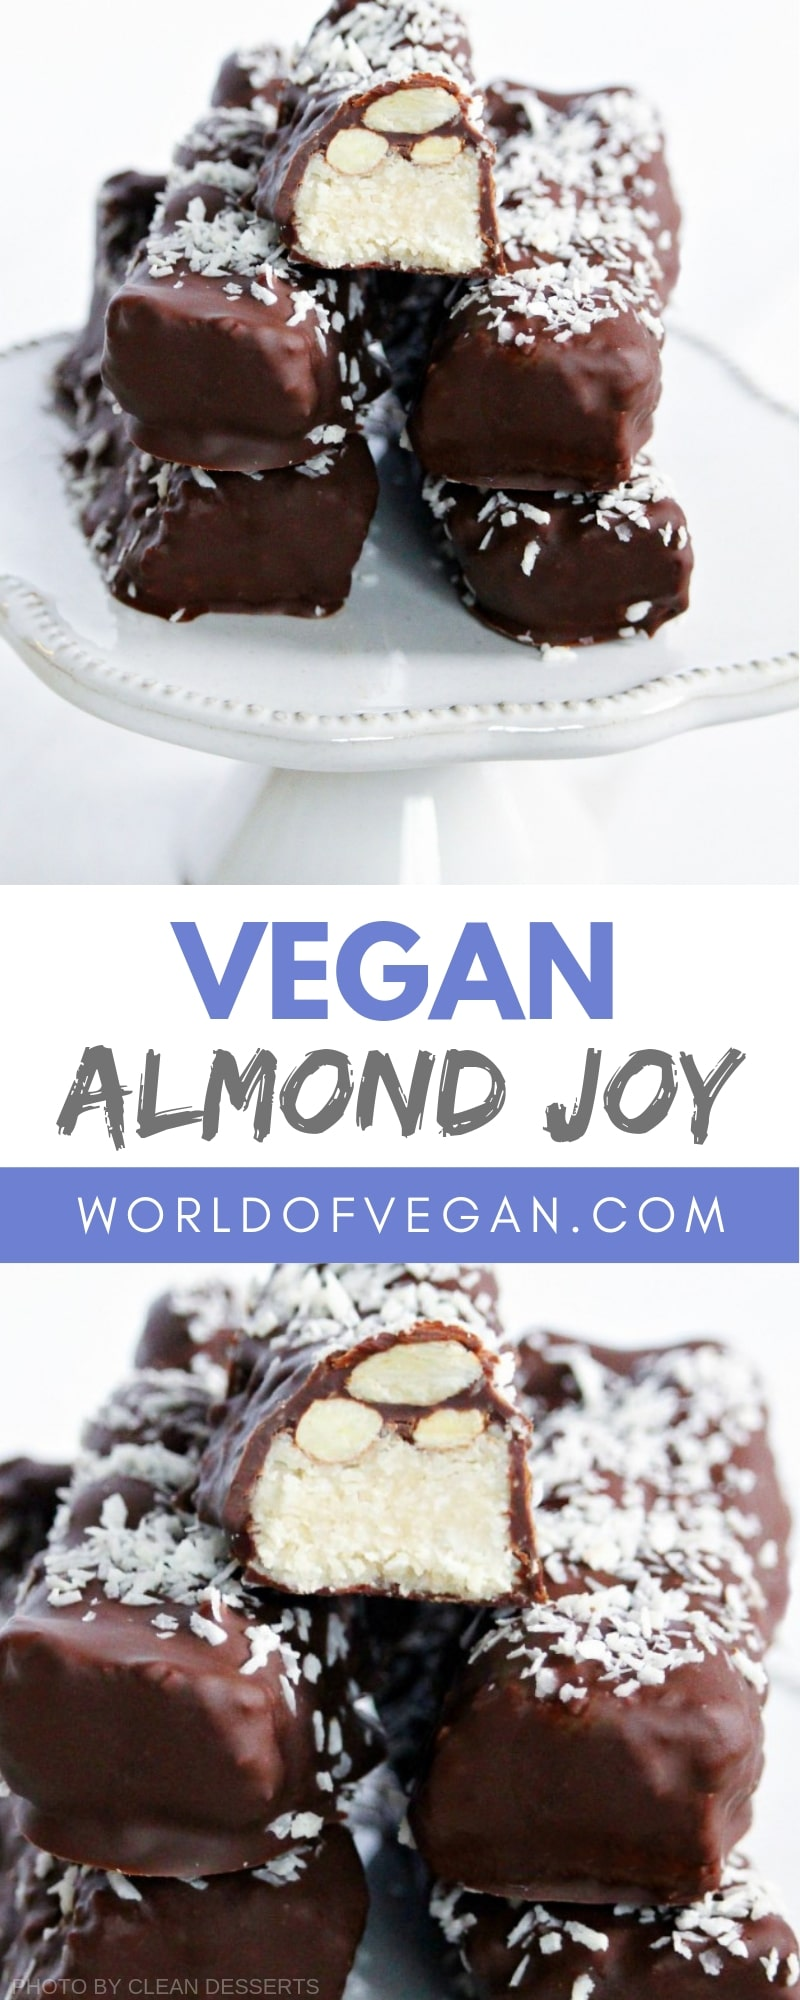 Vegan Almond Joy Bars Recipe | Vegan Dessert | World of Vegan | #almond #dessert #candy #bar #coconut #almonjoy #vegan #worldofvegan